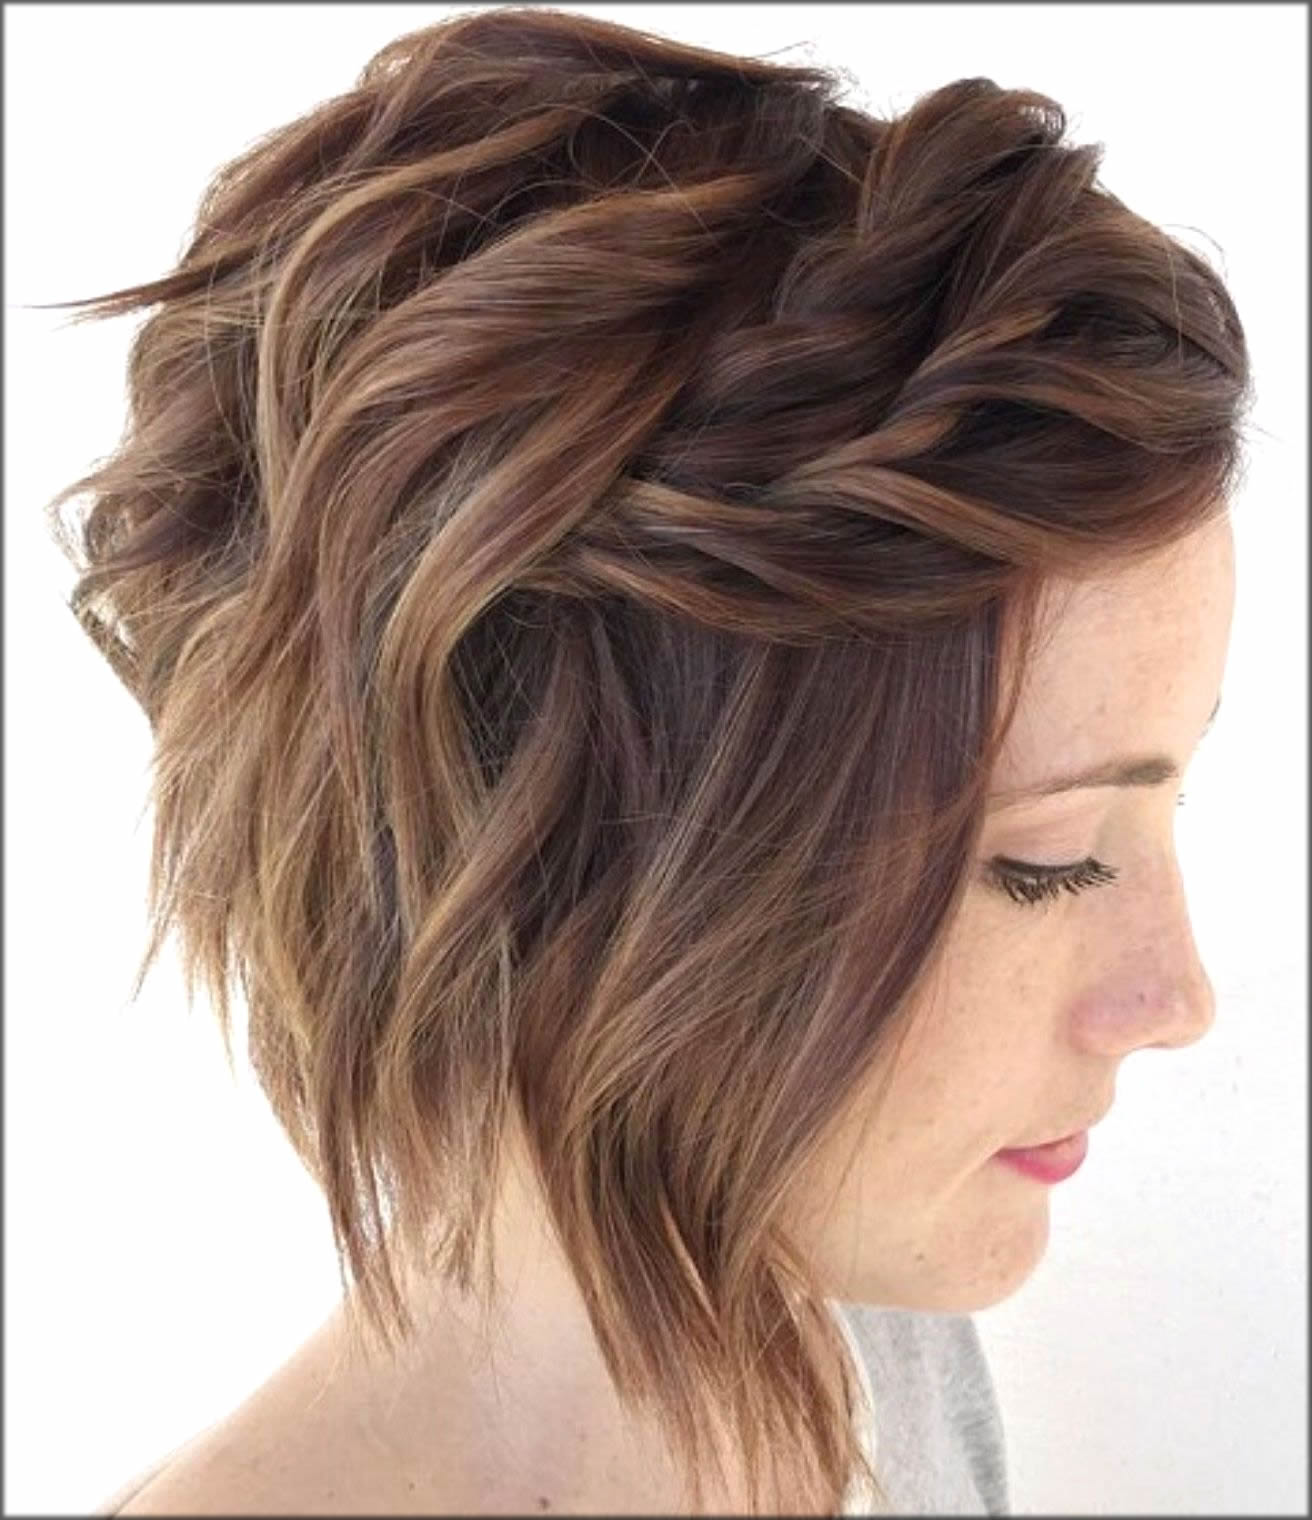 Mind Blowing Twists Short Haircuts And Hairstyles for Fine Hair